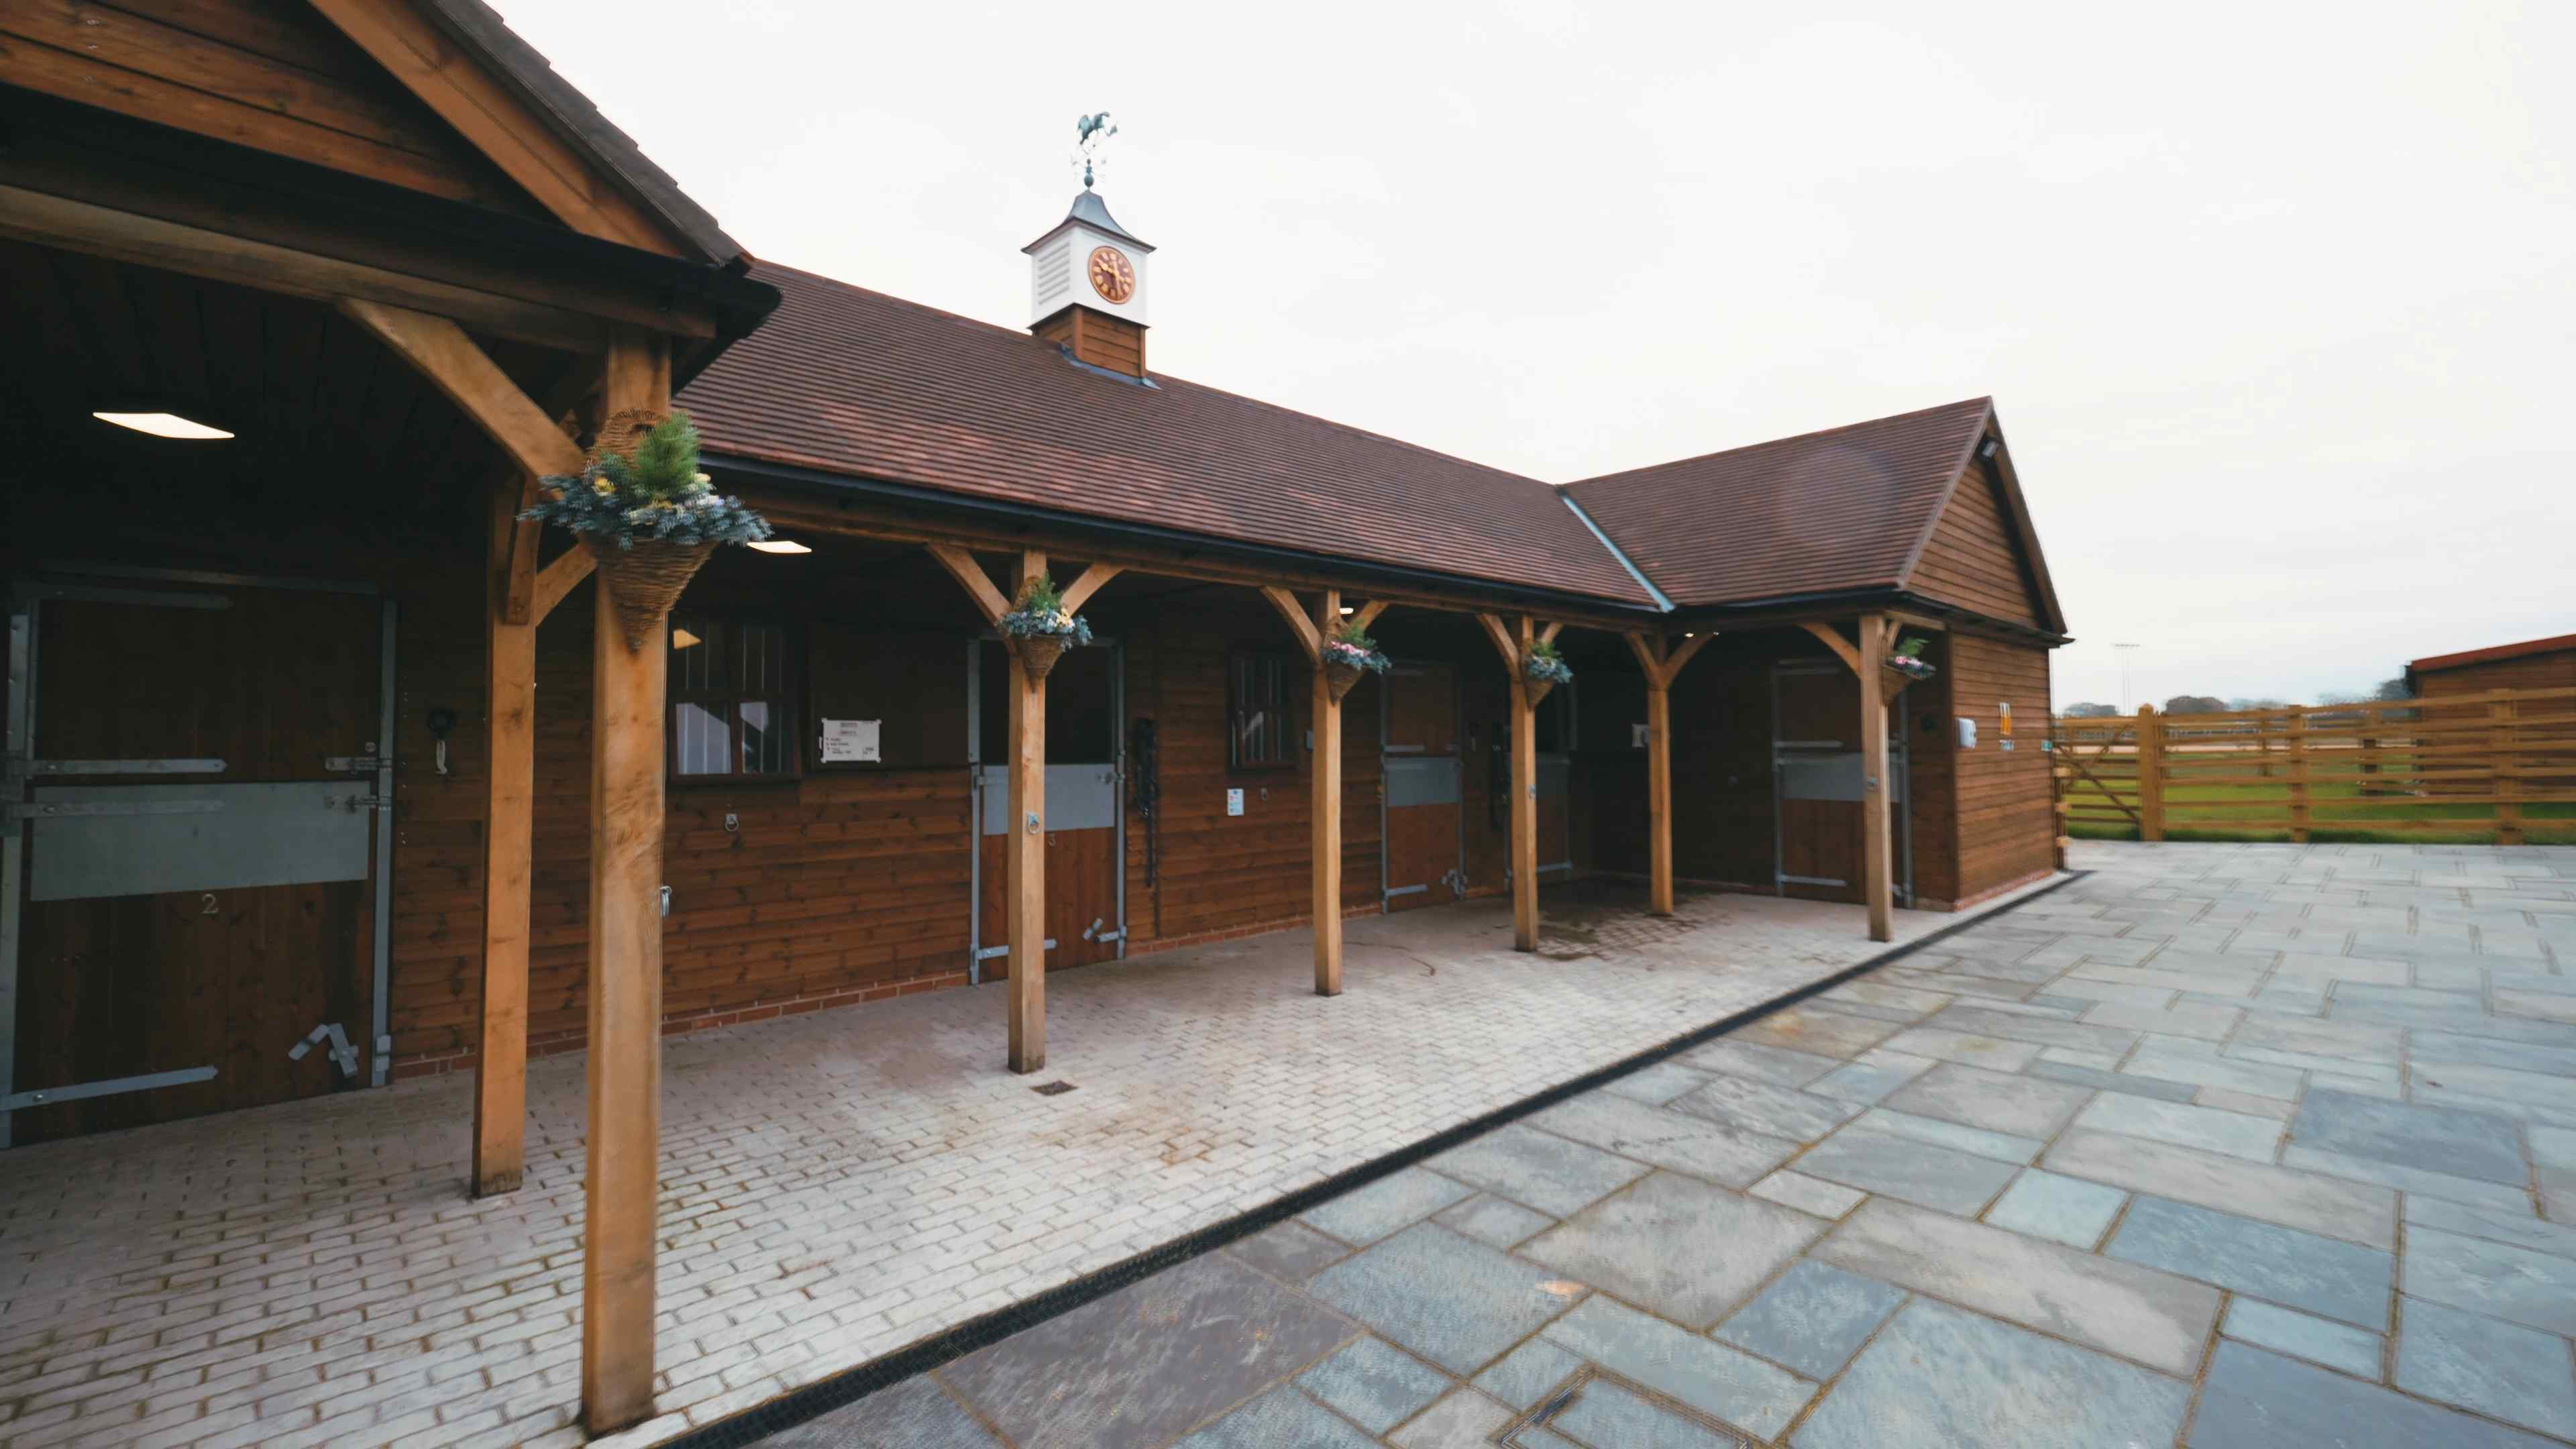 Bespoke Stable Manufacturers Designers Of Equestrian Buildings